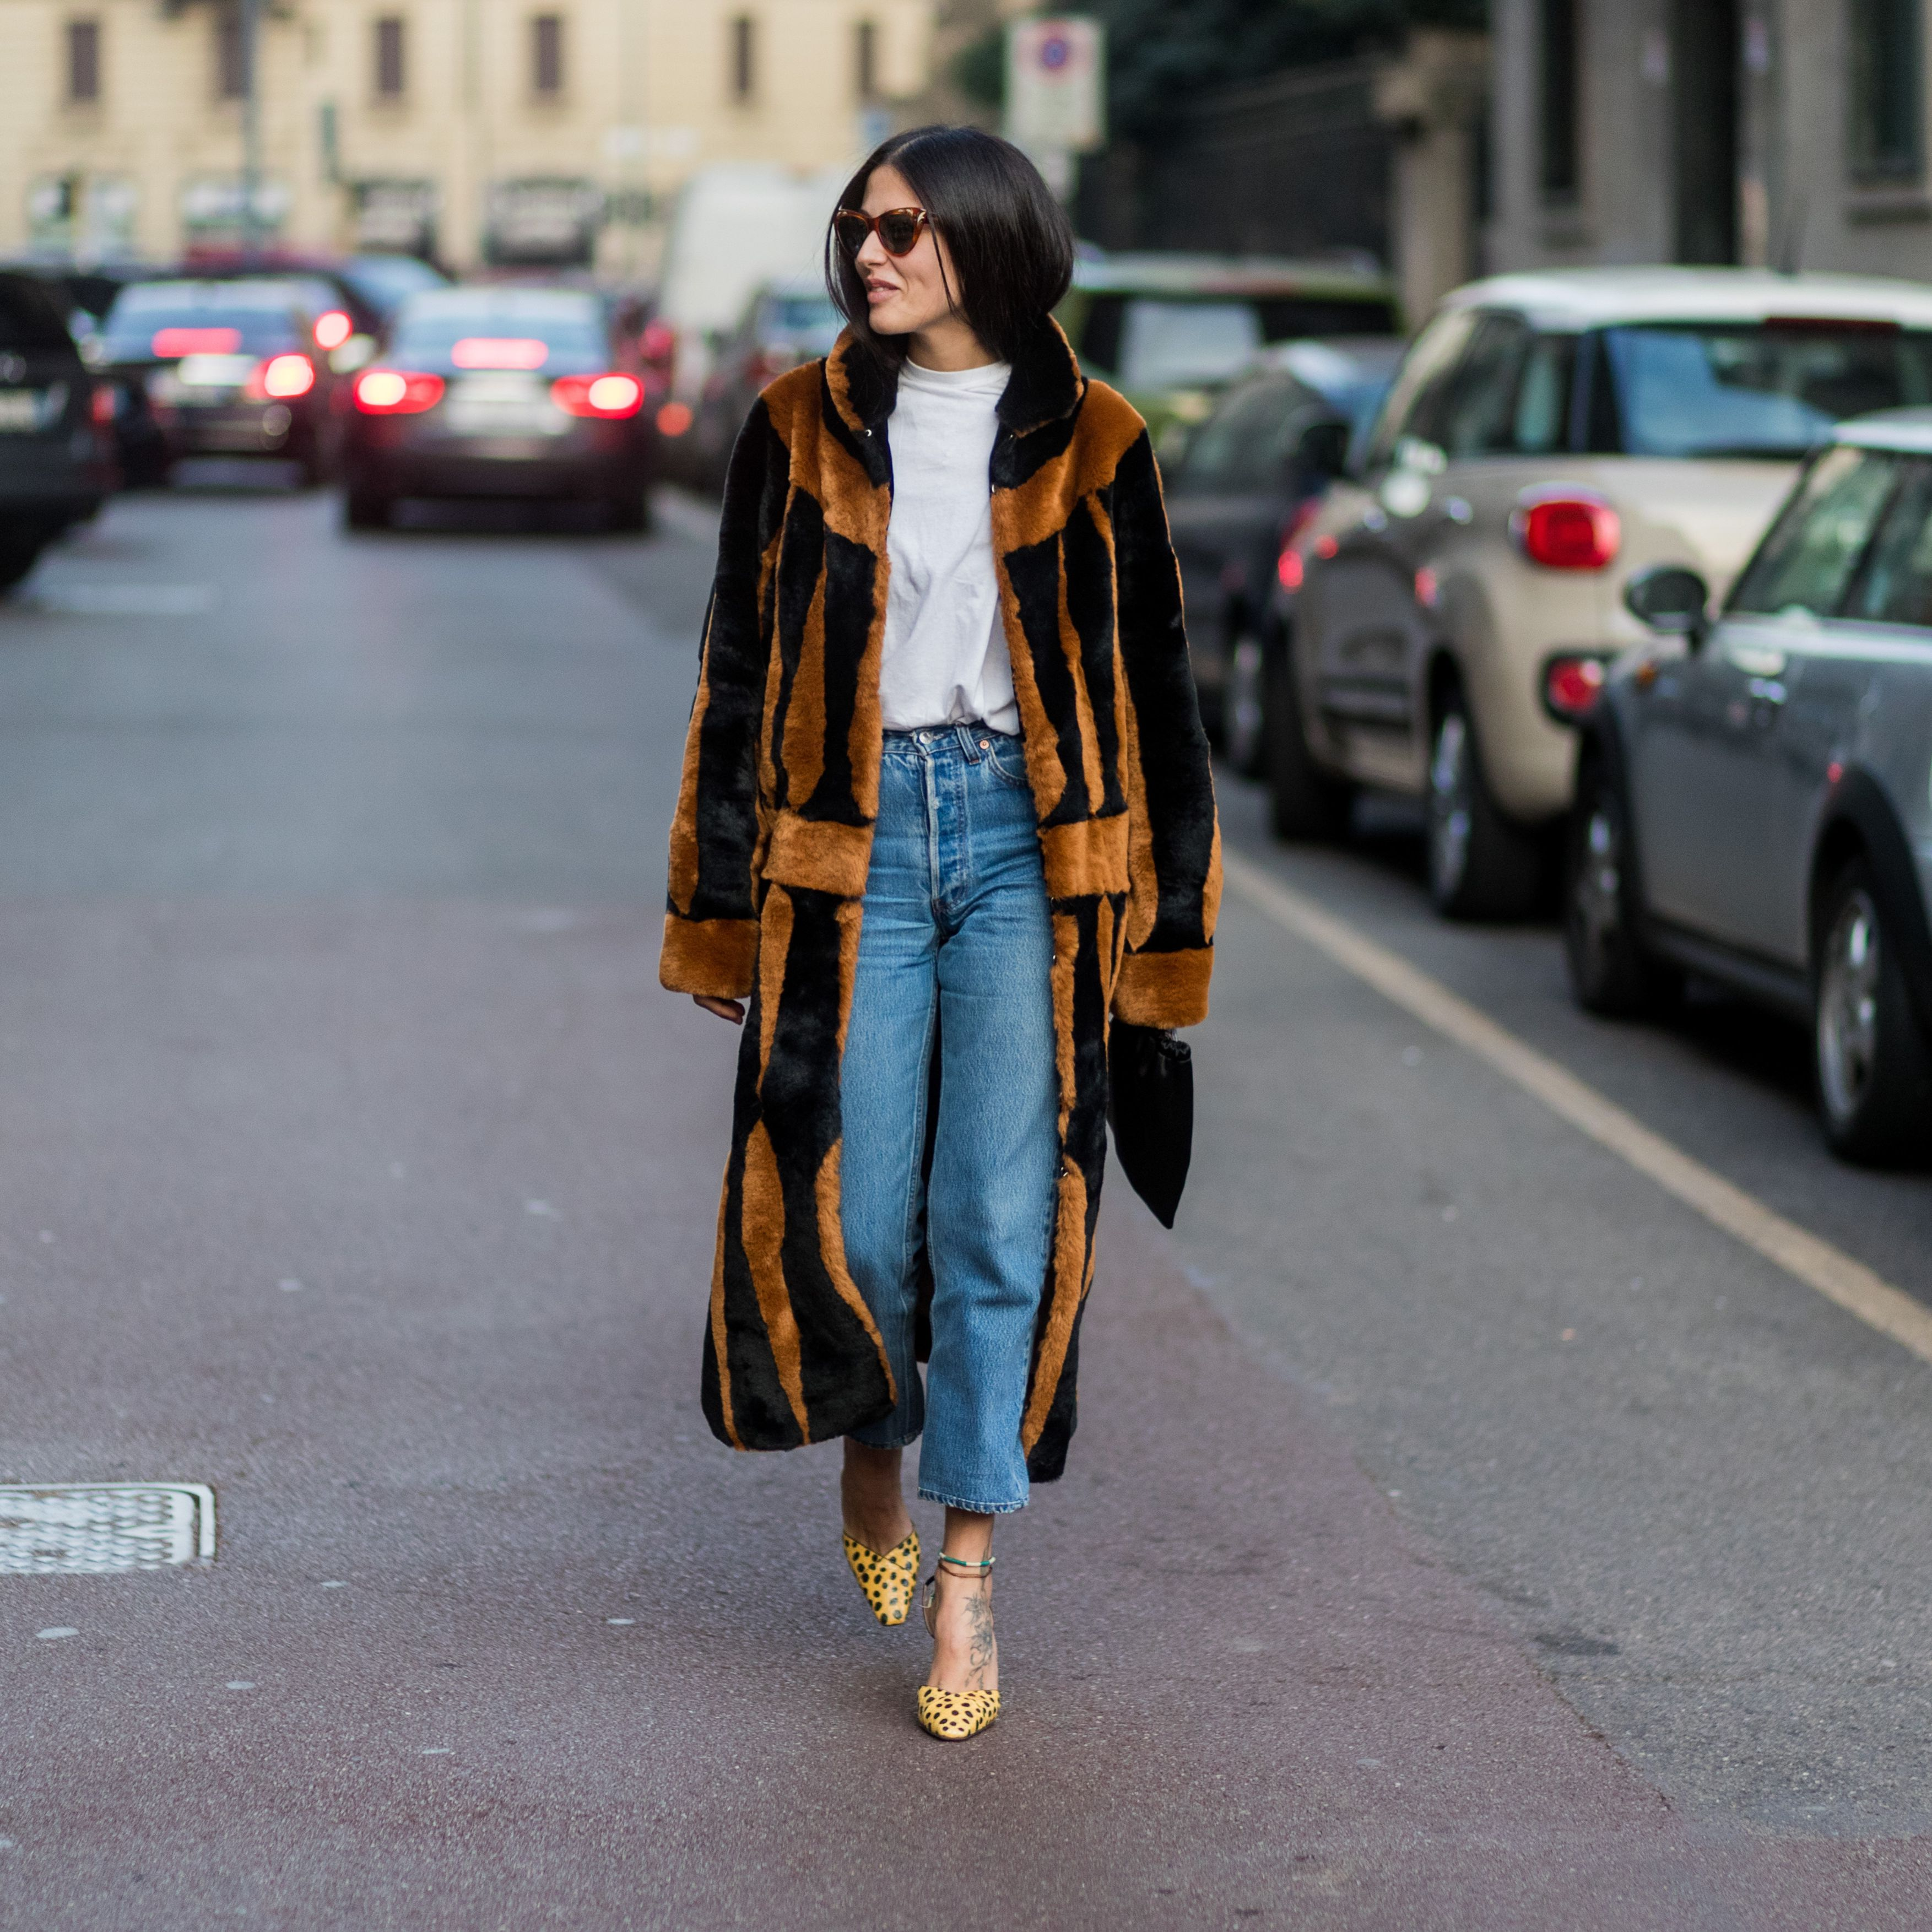 7 Winter Outfit Ideas - How to Dress This Winter